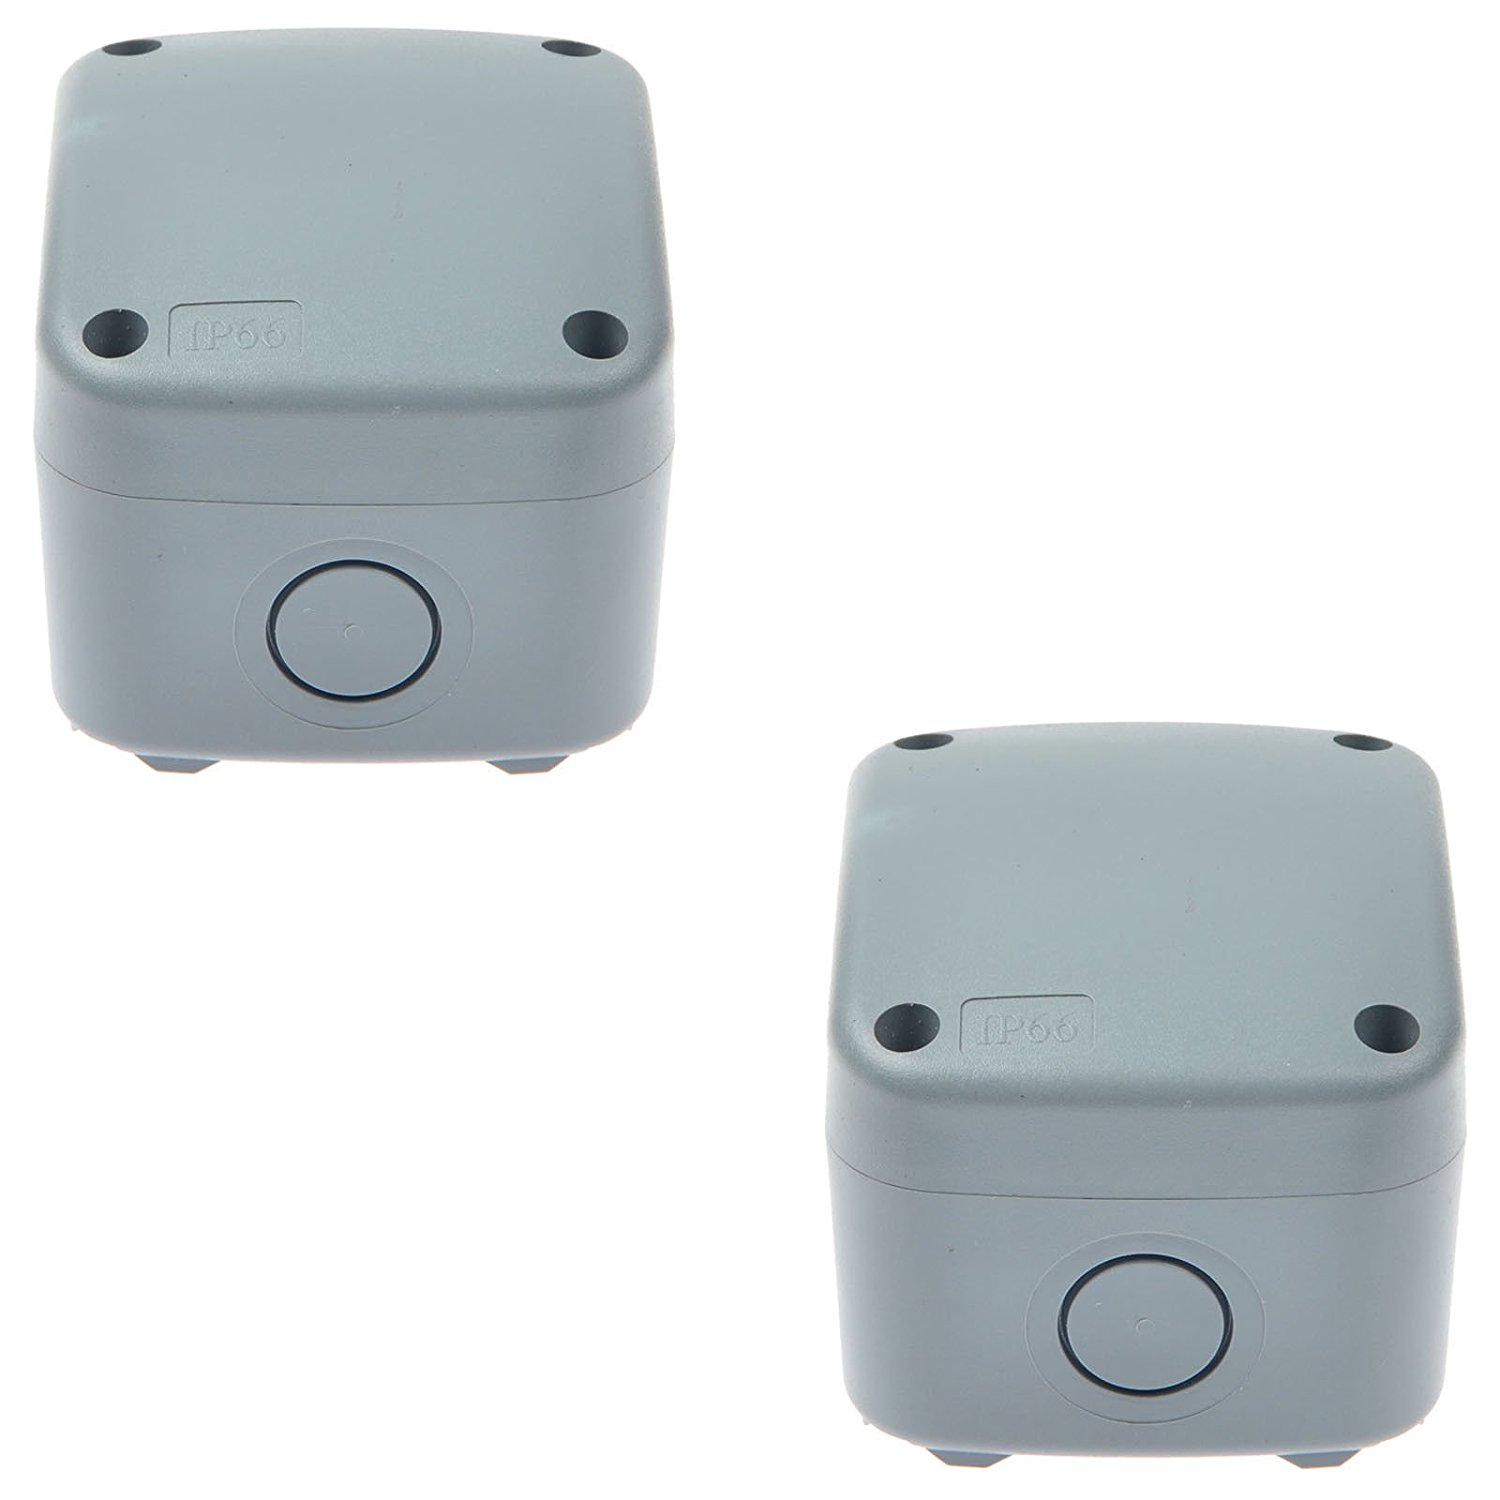 GREENCYCLE 2 Pack IP66 Rated Plastic Weatherproof Junction Box Fit for Outdoor Use, 867462mm